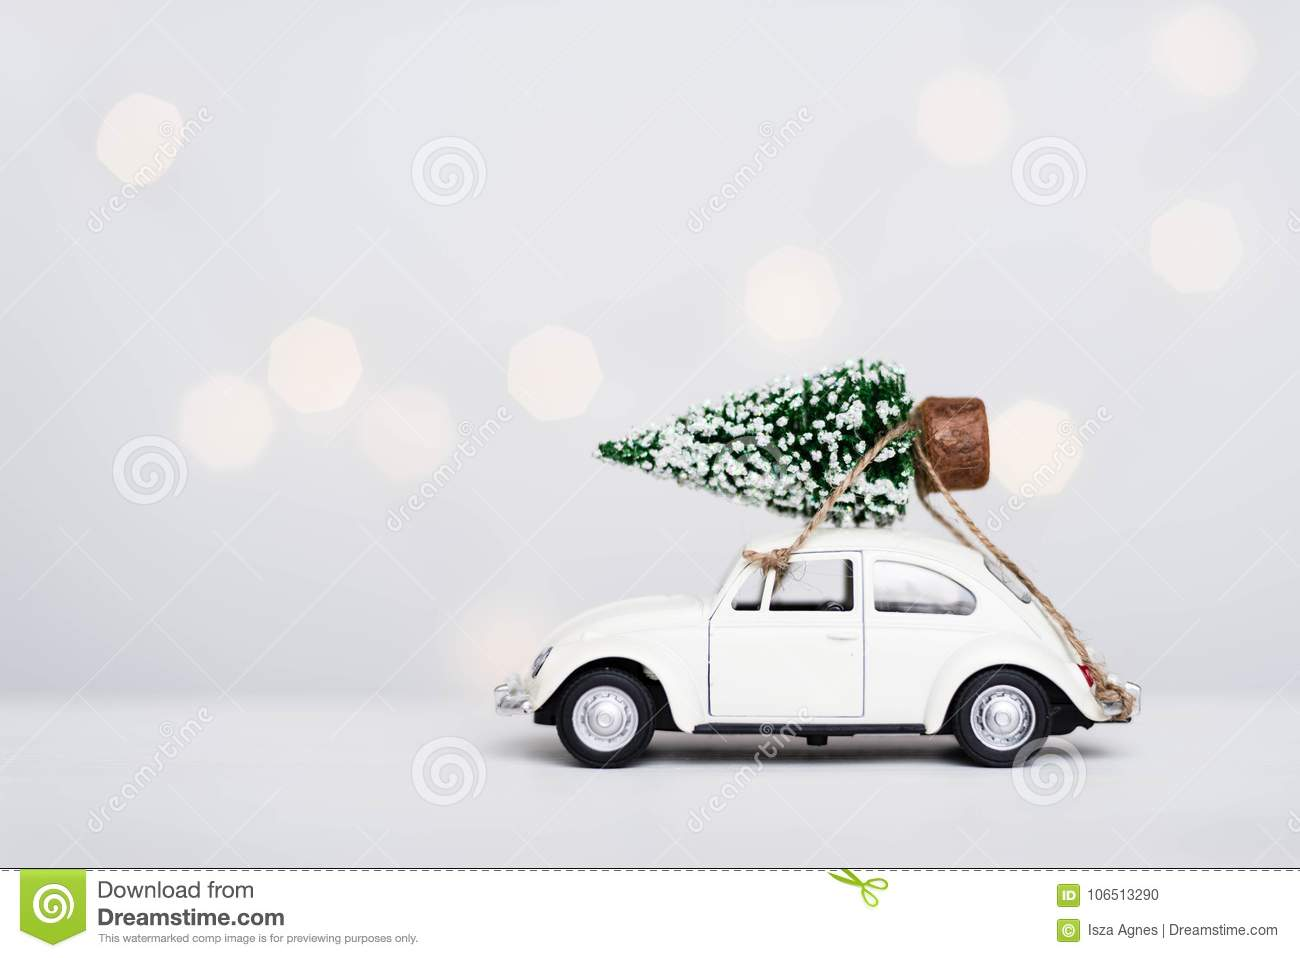 A Home For Christmas.Driving Home For Christmas Stock Photo Image Of Greeting